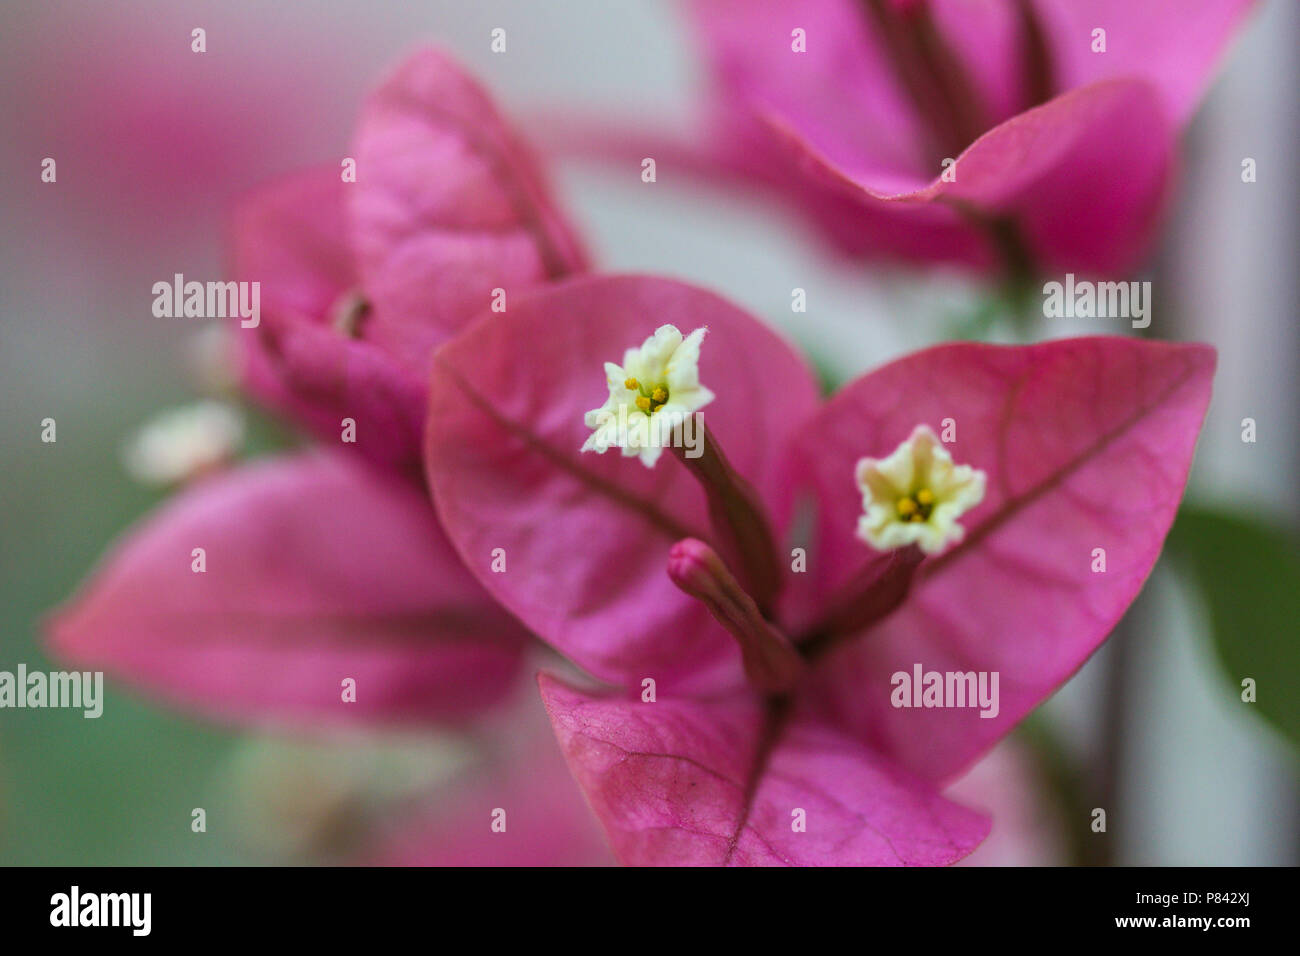 Brazilian Ornamental Plant Bougainvillea With Pink And White Flowers